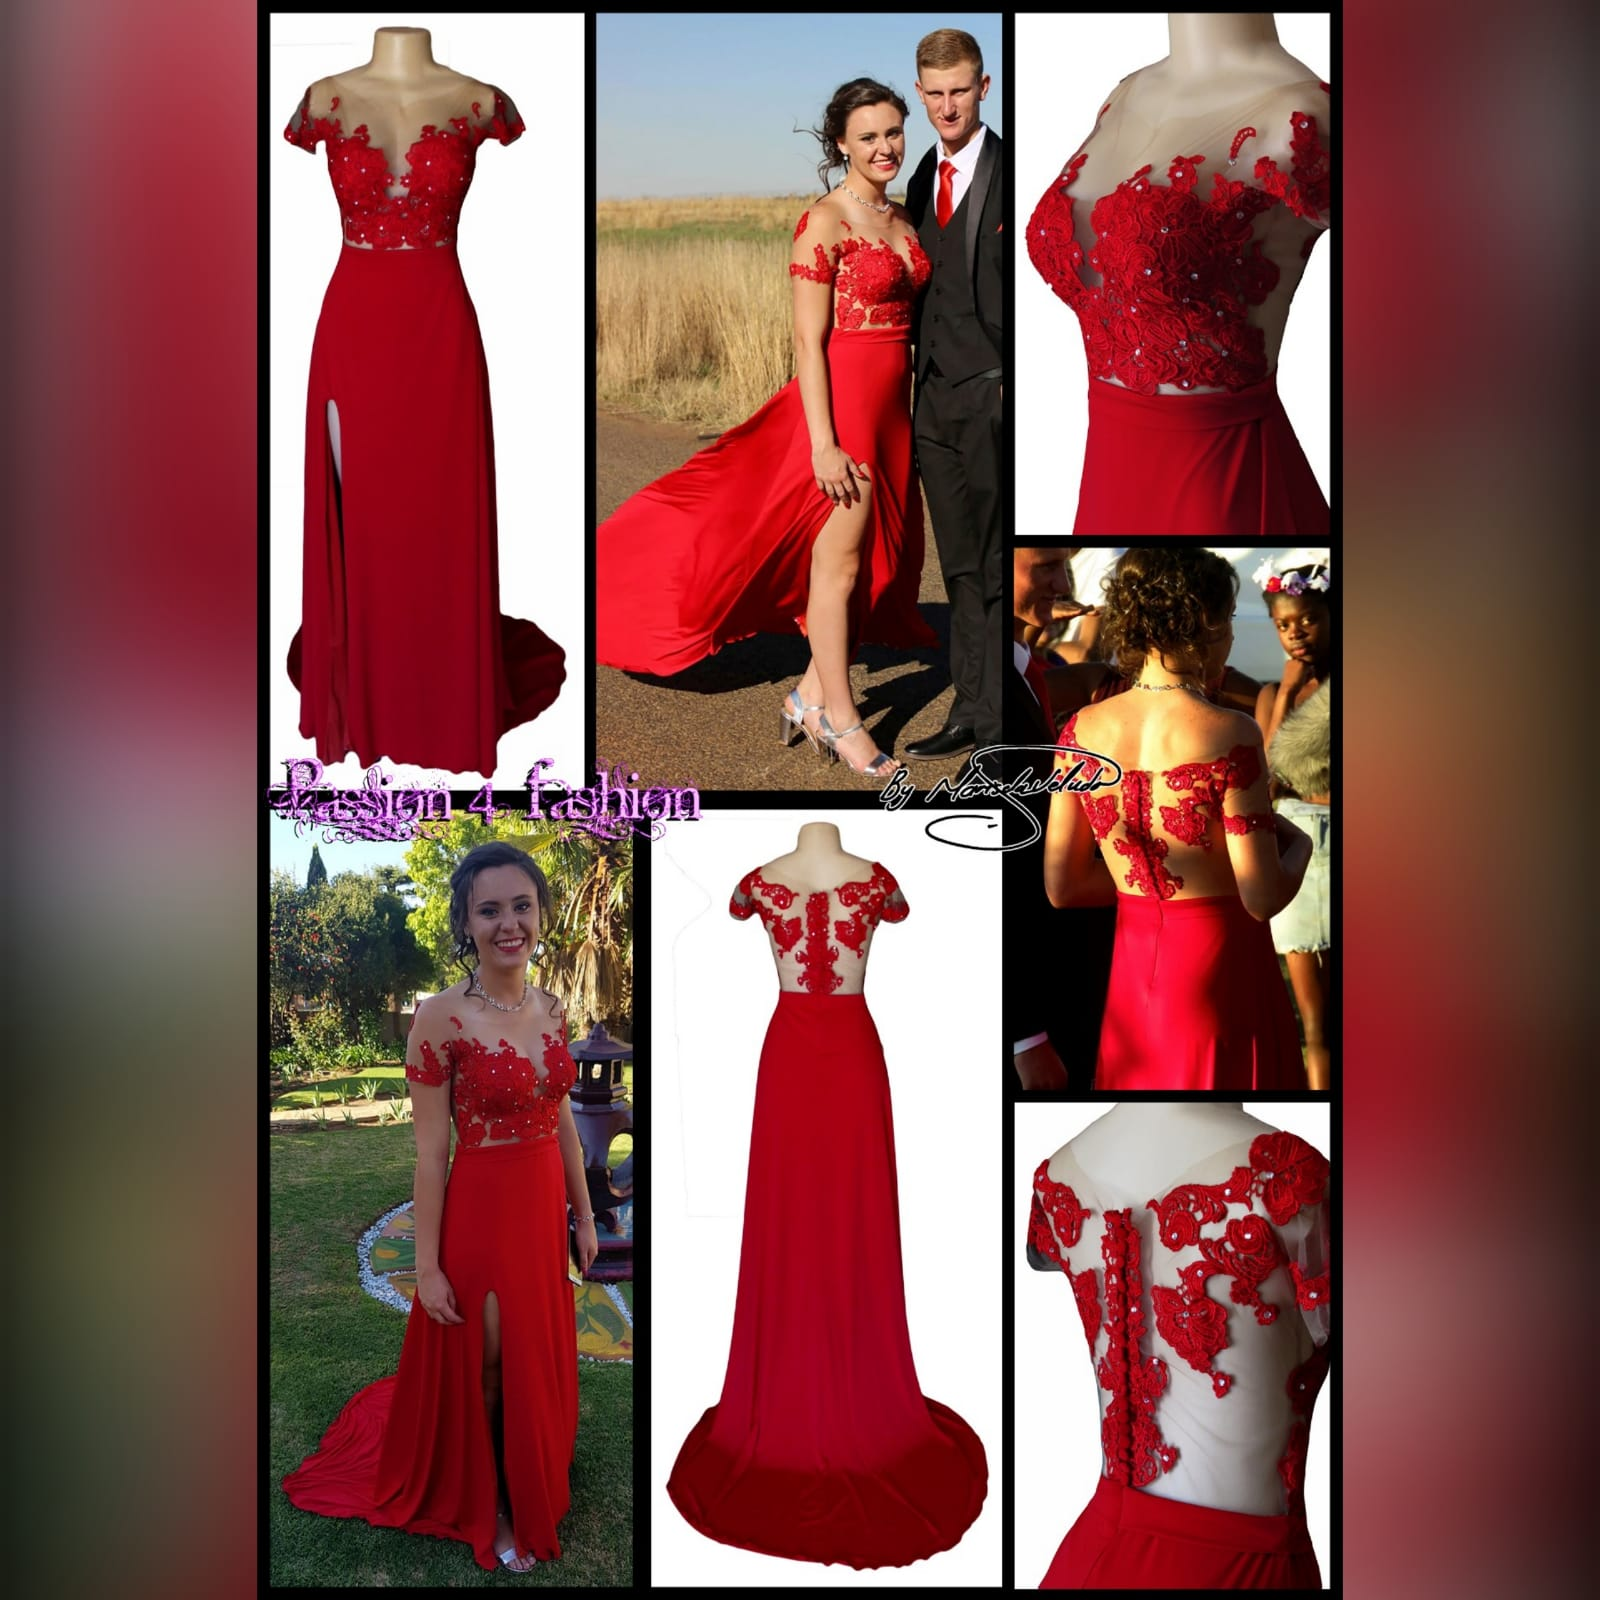 Red flowy lace bodice prom dress 5 red flowy lace bodice prom dress. With an illusion lace bodice detailed with silver beads and buttons. Evening dress with a slit and a train.